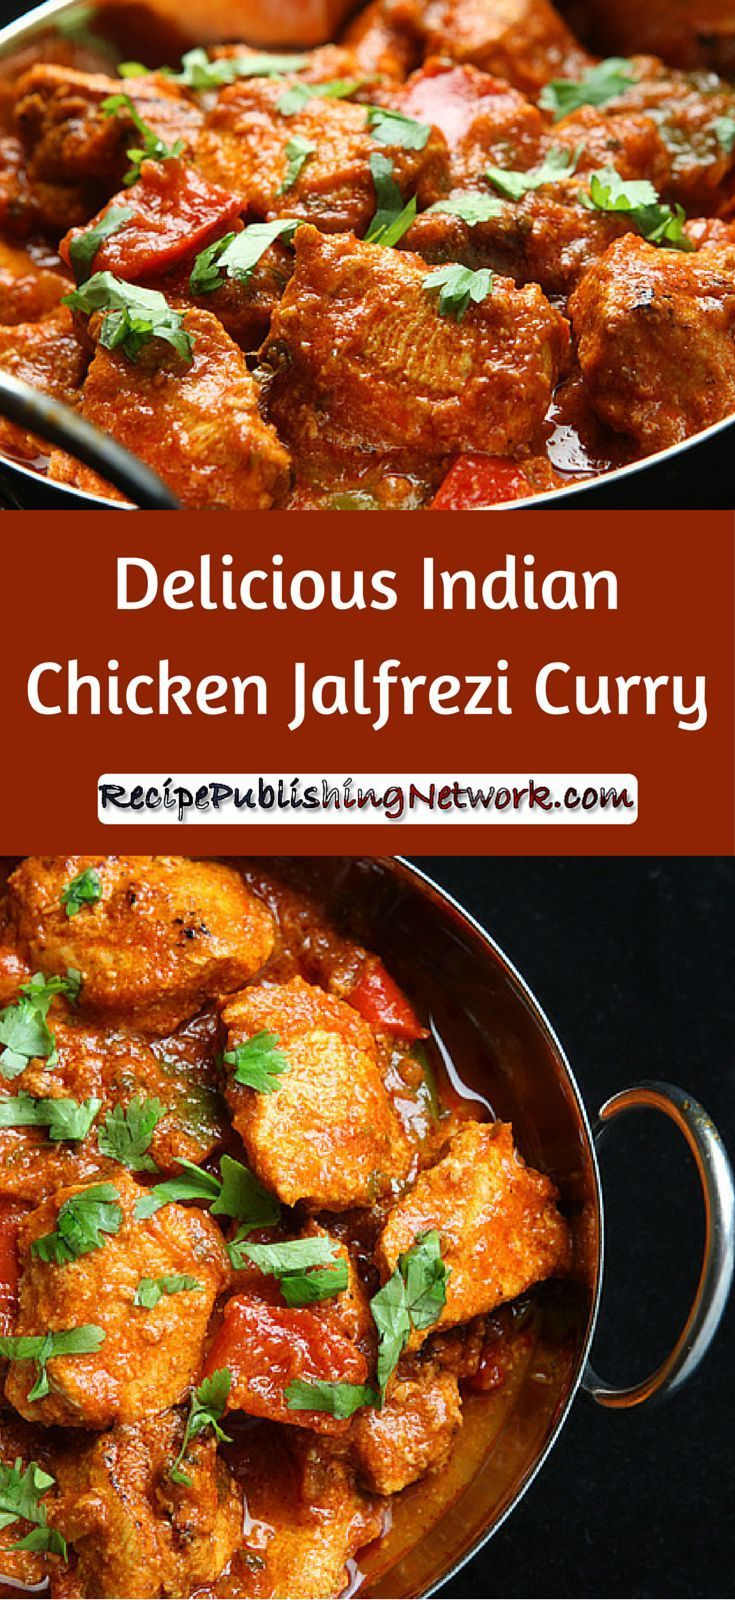 Delicious indian chicken jalfrezi curry recipe meat india and food forumfinder Choice Image